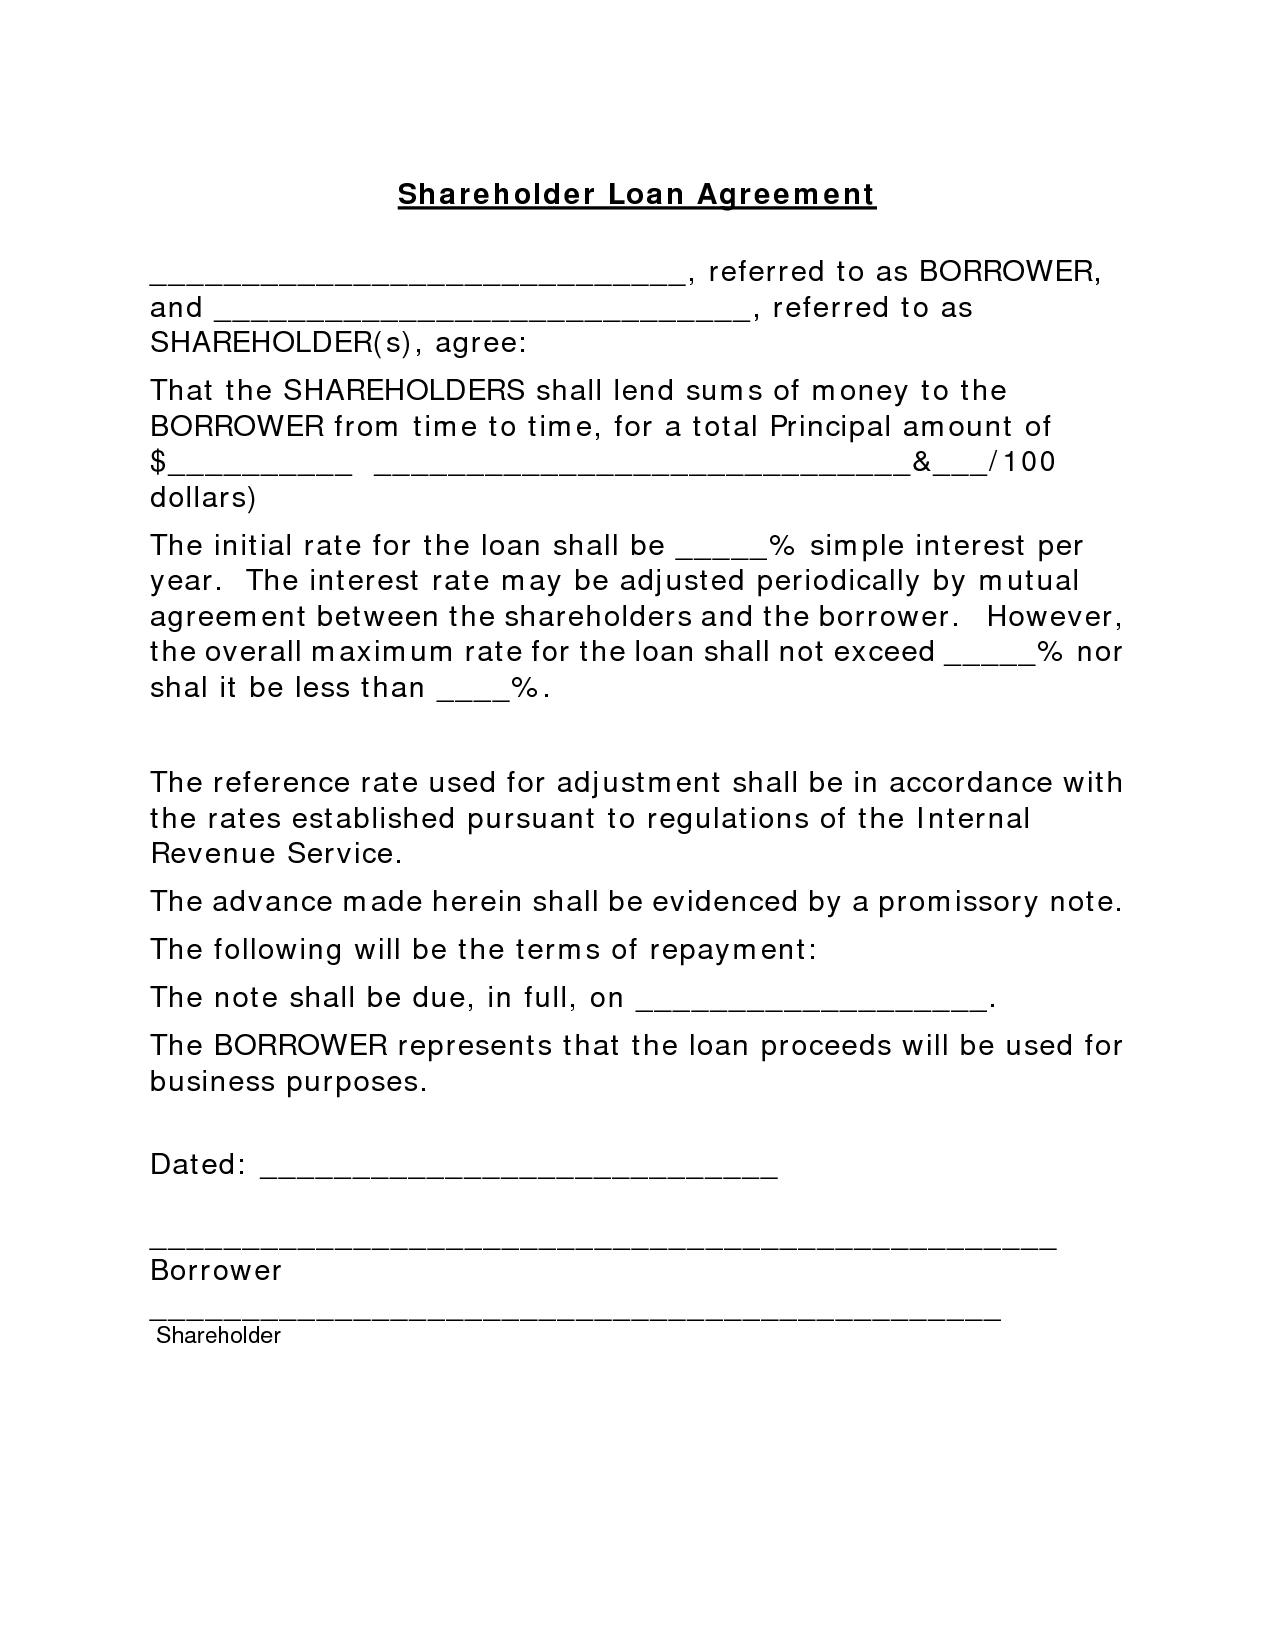 Cash Out Refinance Letter Template - Loan Contracts Template Pt Lawencon Internasional Simple Loan